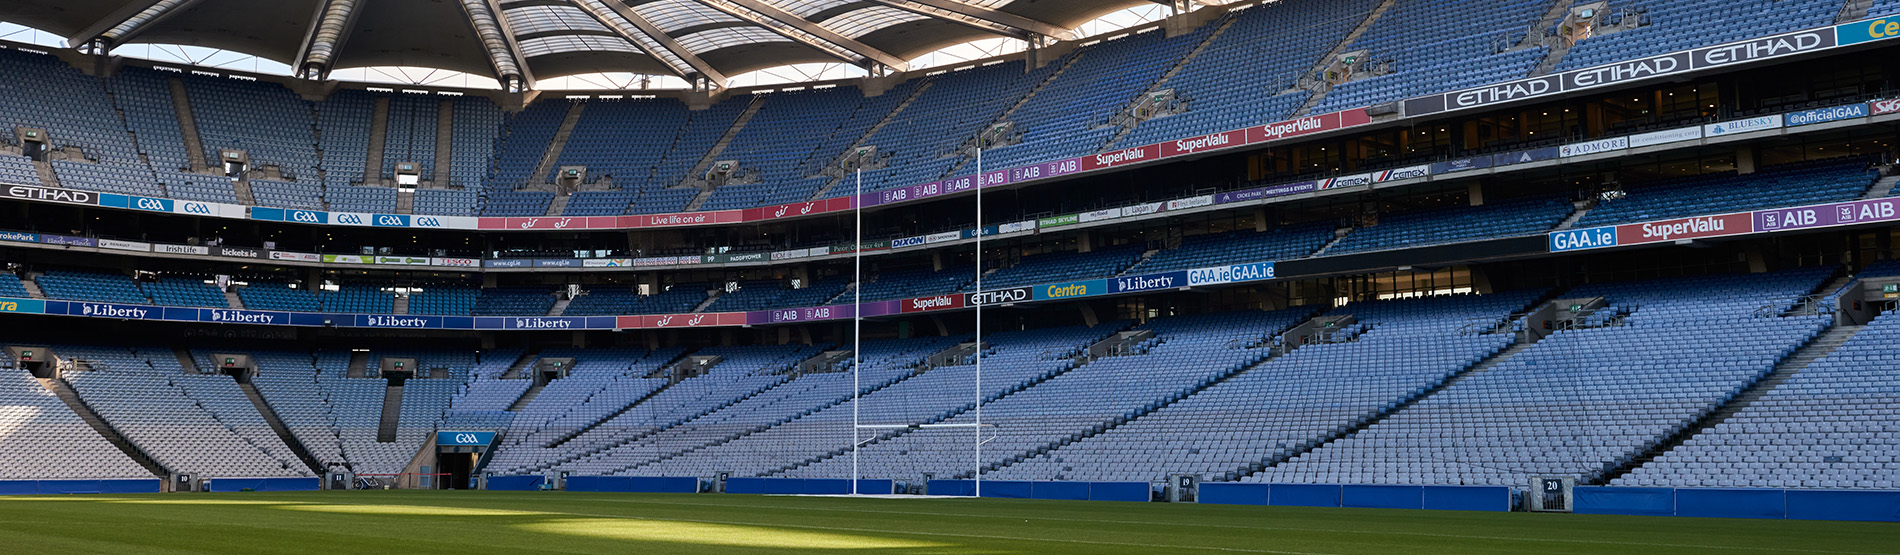 Family hotel stays with The Croke Park